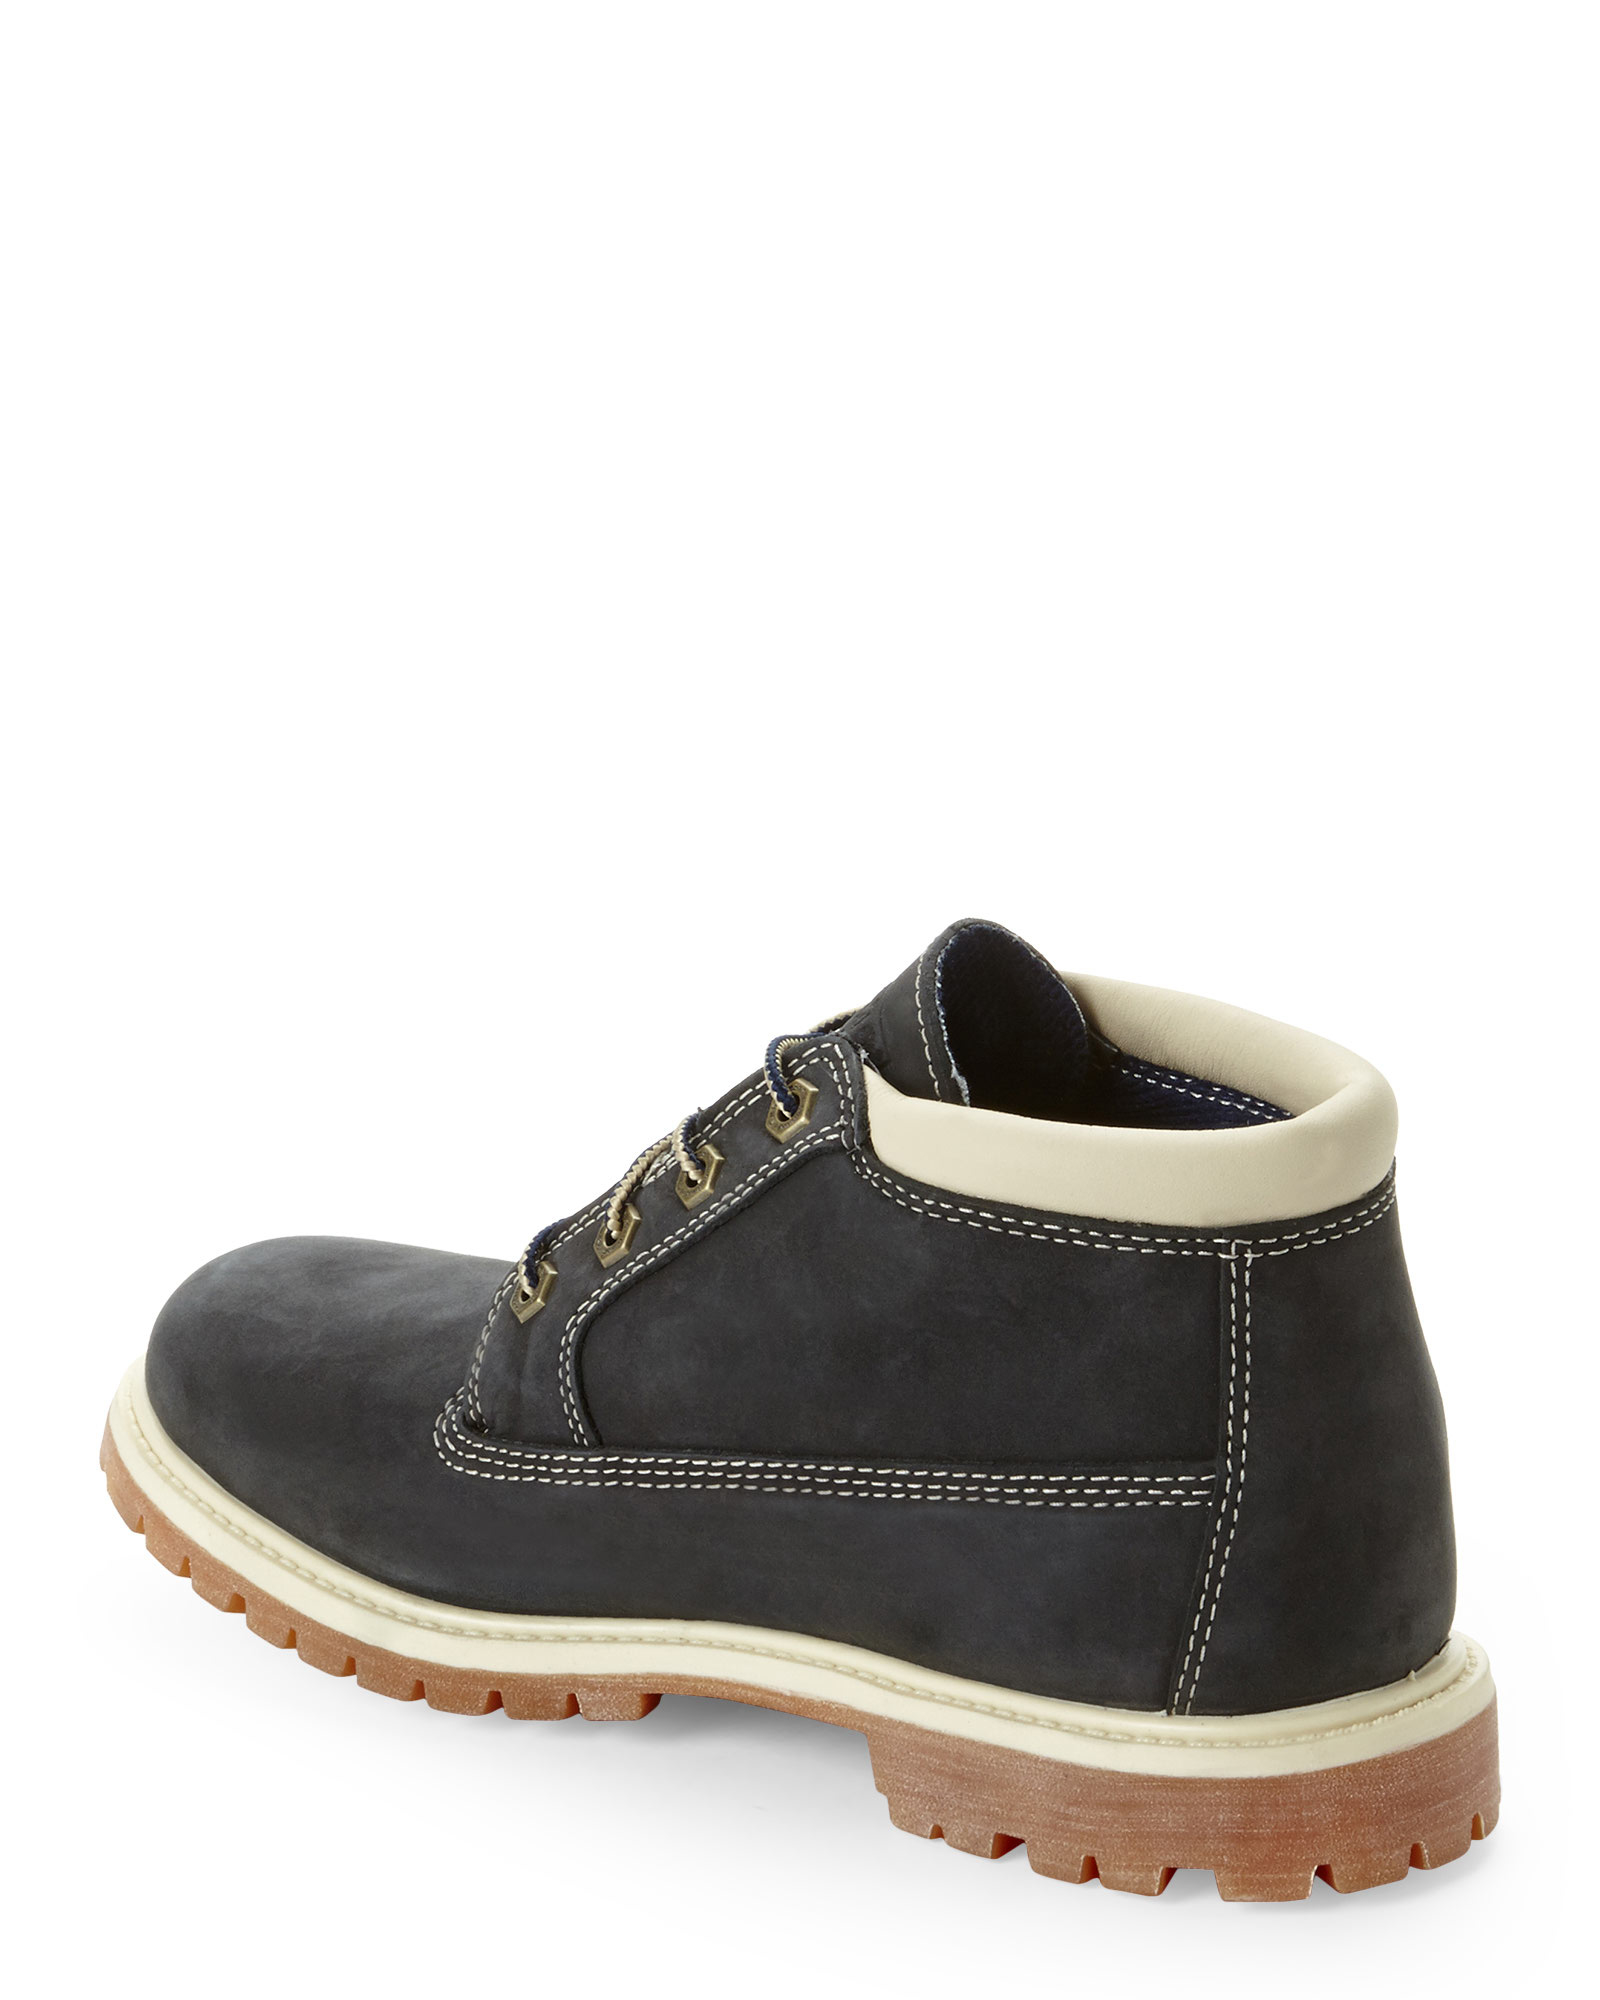 Lyst Timberland Navy Nellie Chukka Boots In Black For Men